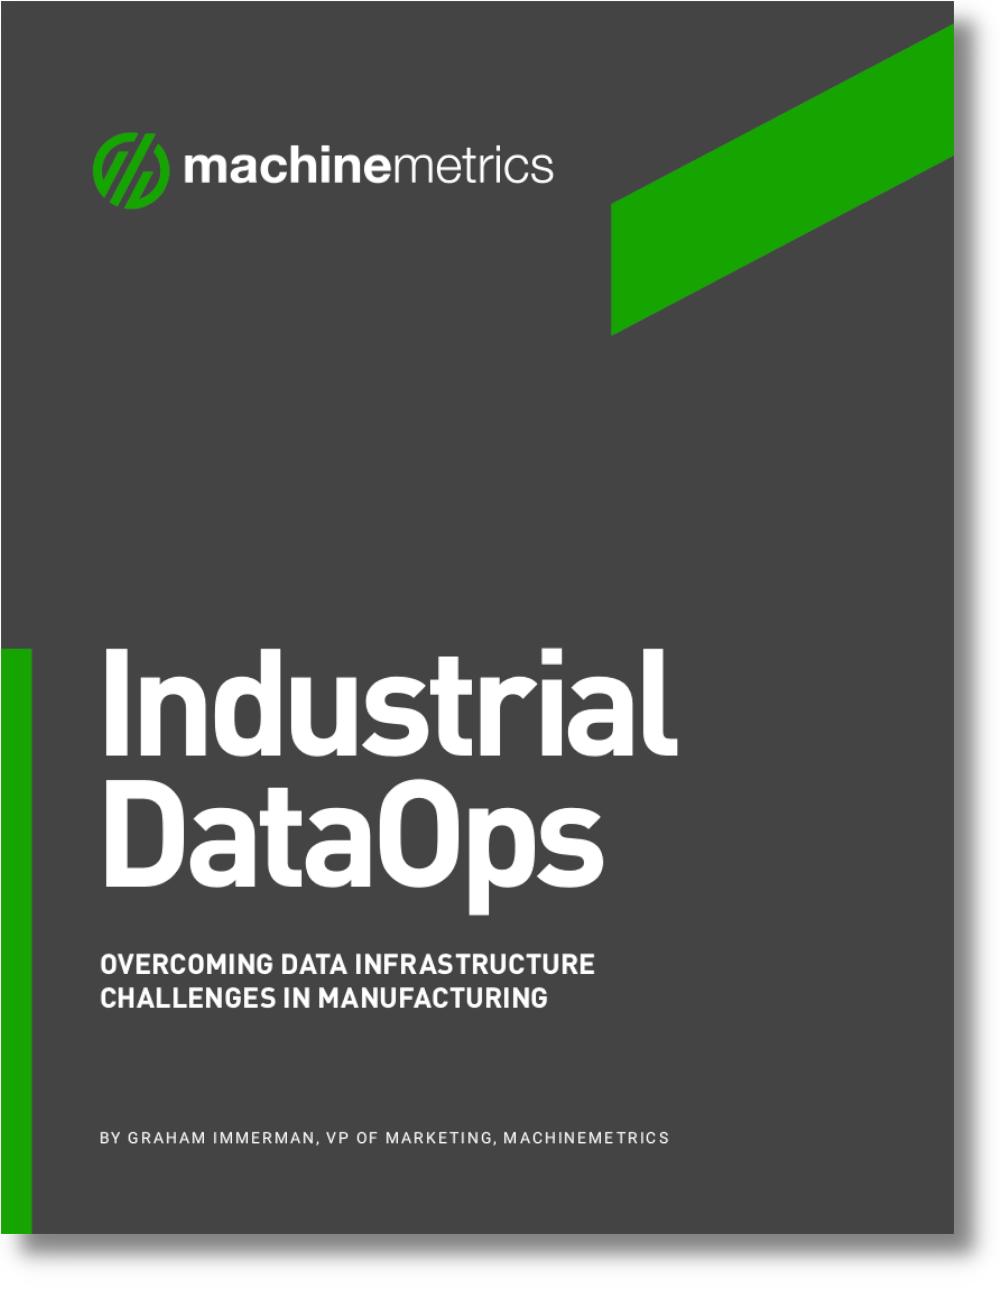 Industrial DataOps: Overcoming Data Infrastructure Challenges in Manufacturing